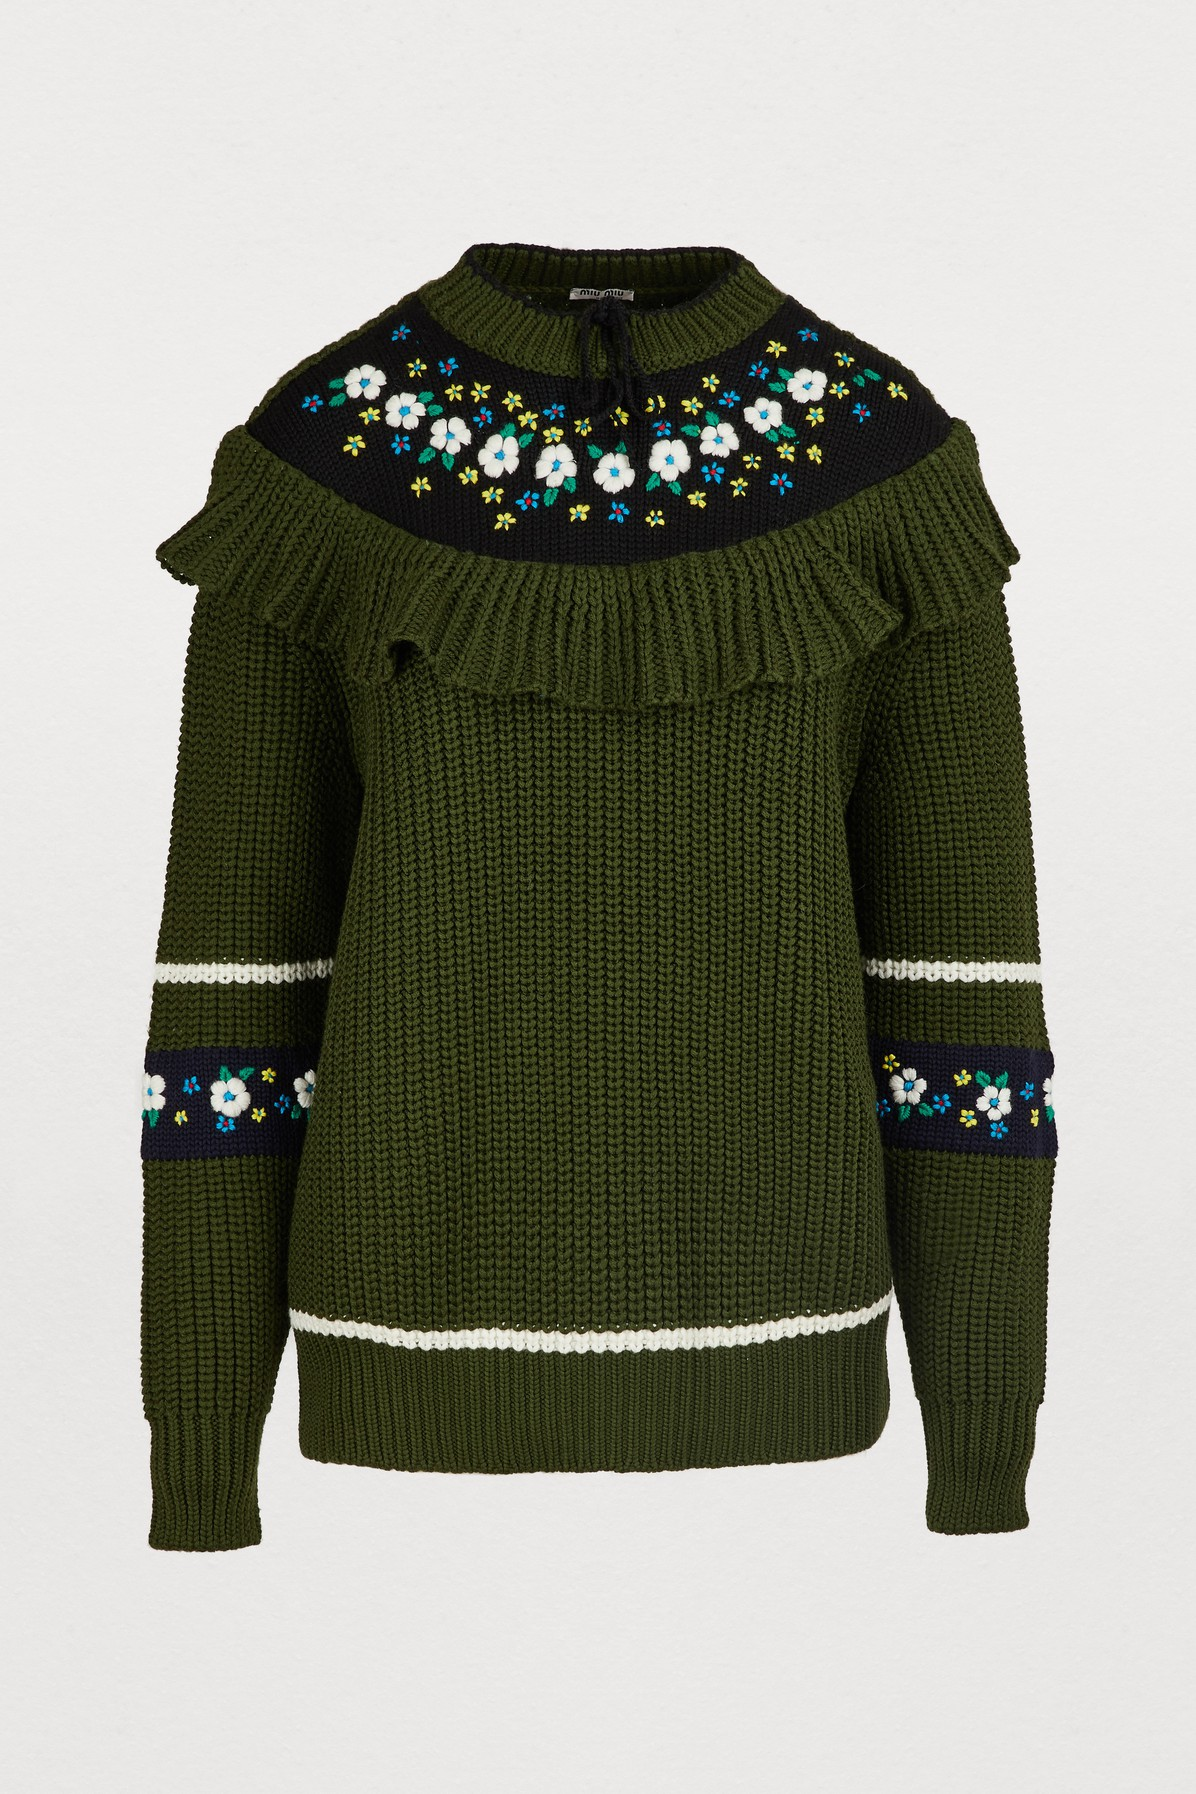 51869f061a56 Shop Miu Miu Jumpers and Cardigans on sale at the Marie Claire Edit